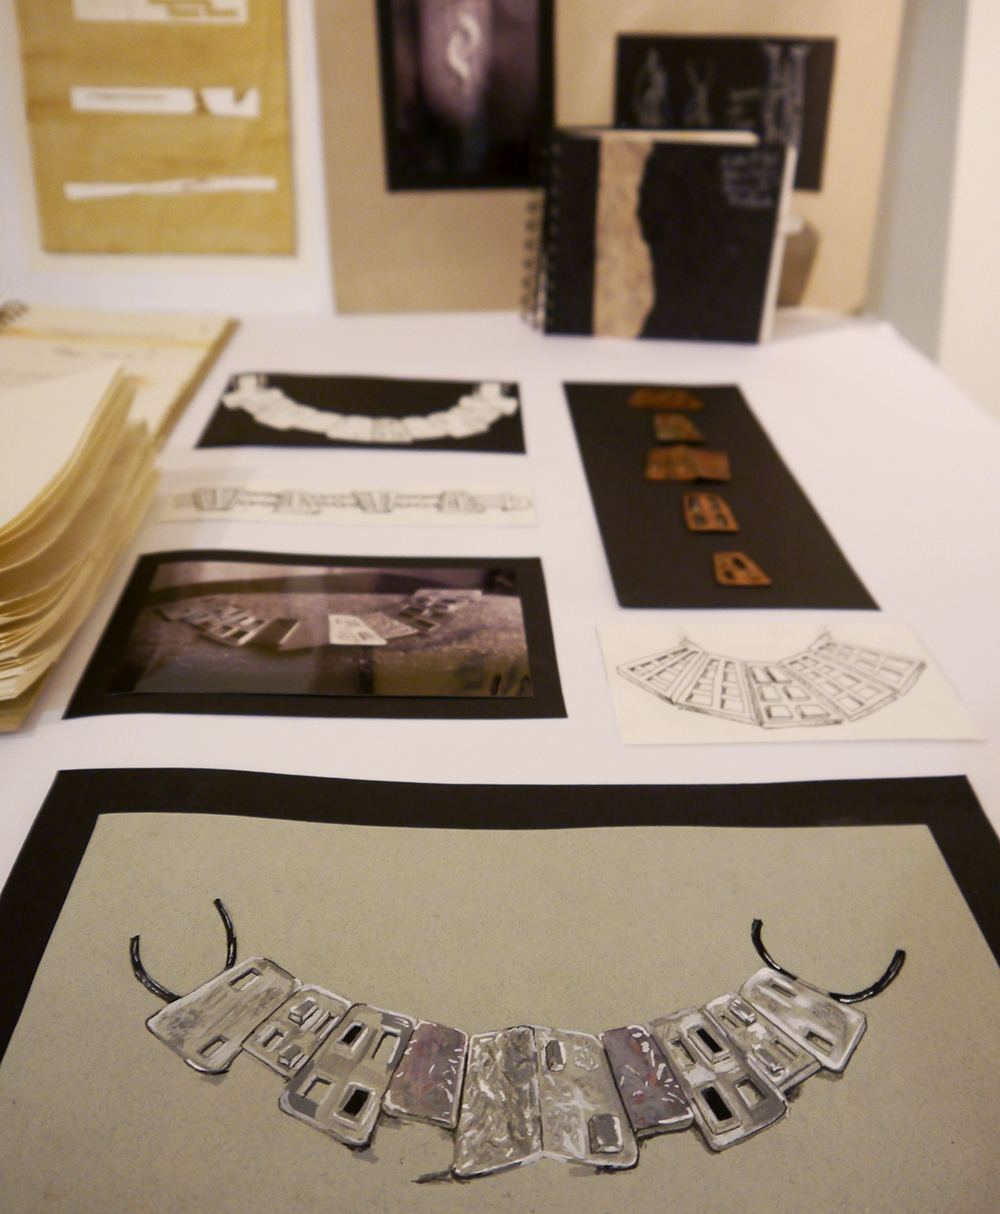 Genna Design, exhibition, jewellery exhibition, Dundee, Wasps Studios Dundee, Genna Delaney, jewellery design, independant design, Scottish design, Scottish jewellery designer, statement necklace, precious metal jewellery, contempoary jewellery design, small business, Q&A, interview